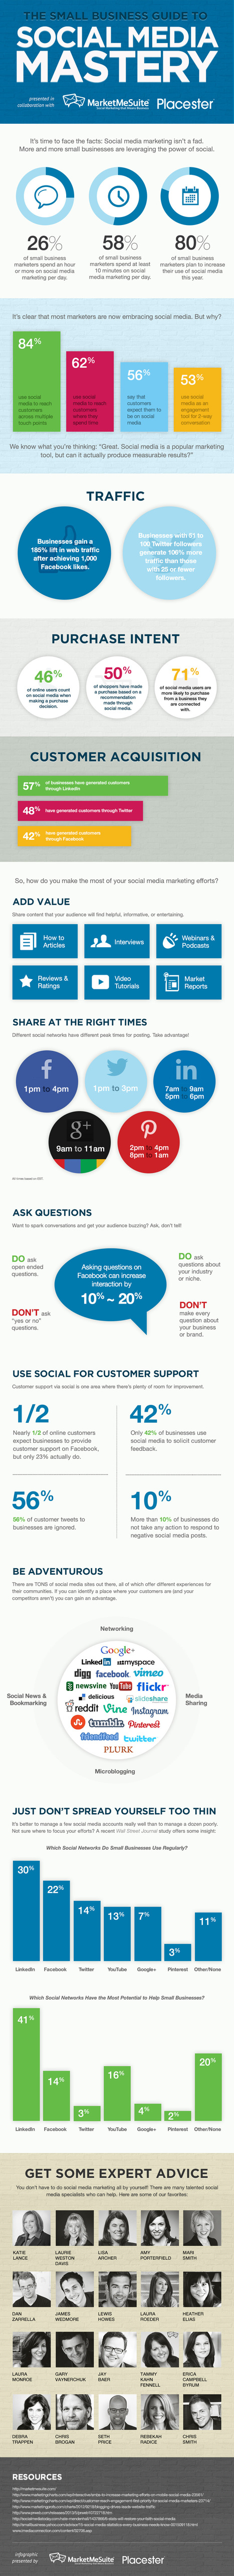 Why social media actually works for small business [infographic] | Attractum | Scoop.it